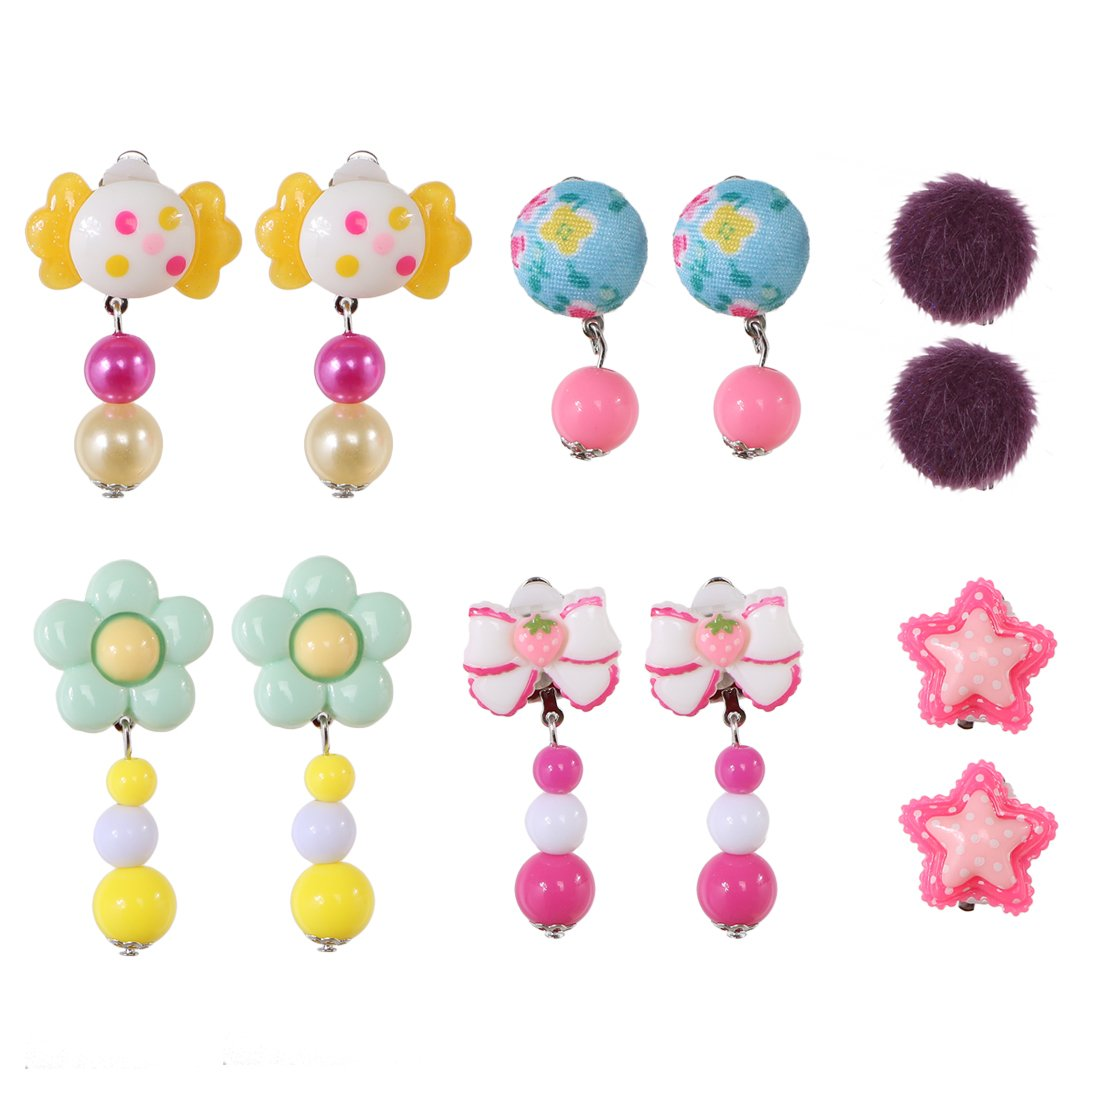 kilofly 6 Pairs Girls Princess Party Favor Jewelry Clip On Earrings Value Pack AWA416set6